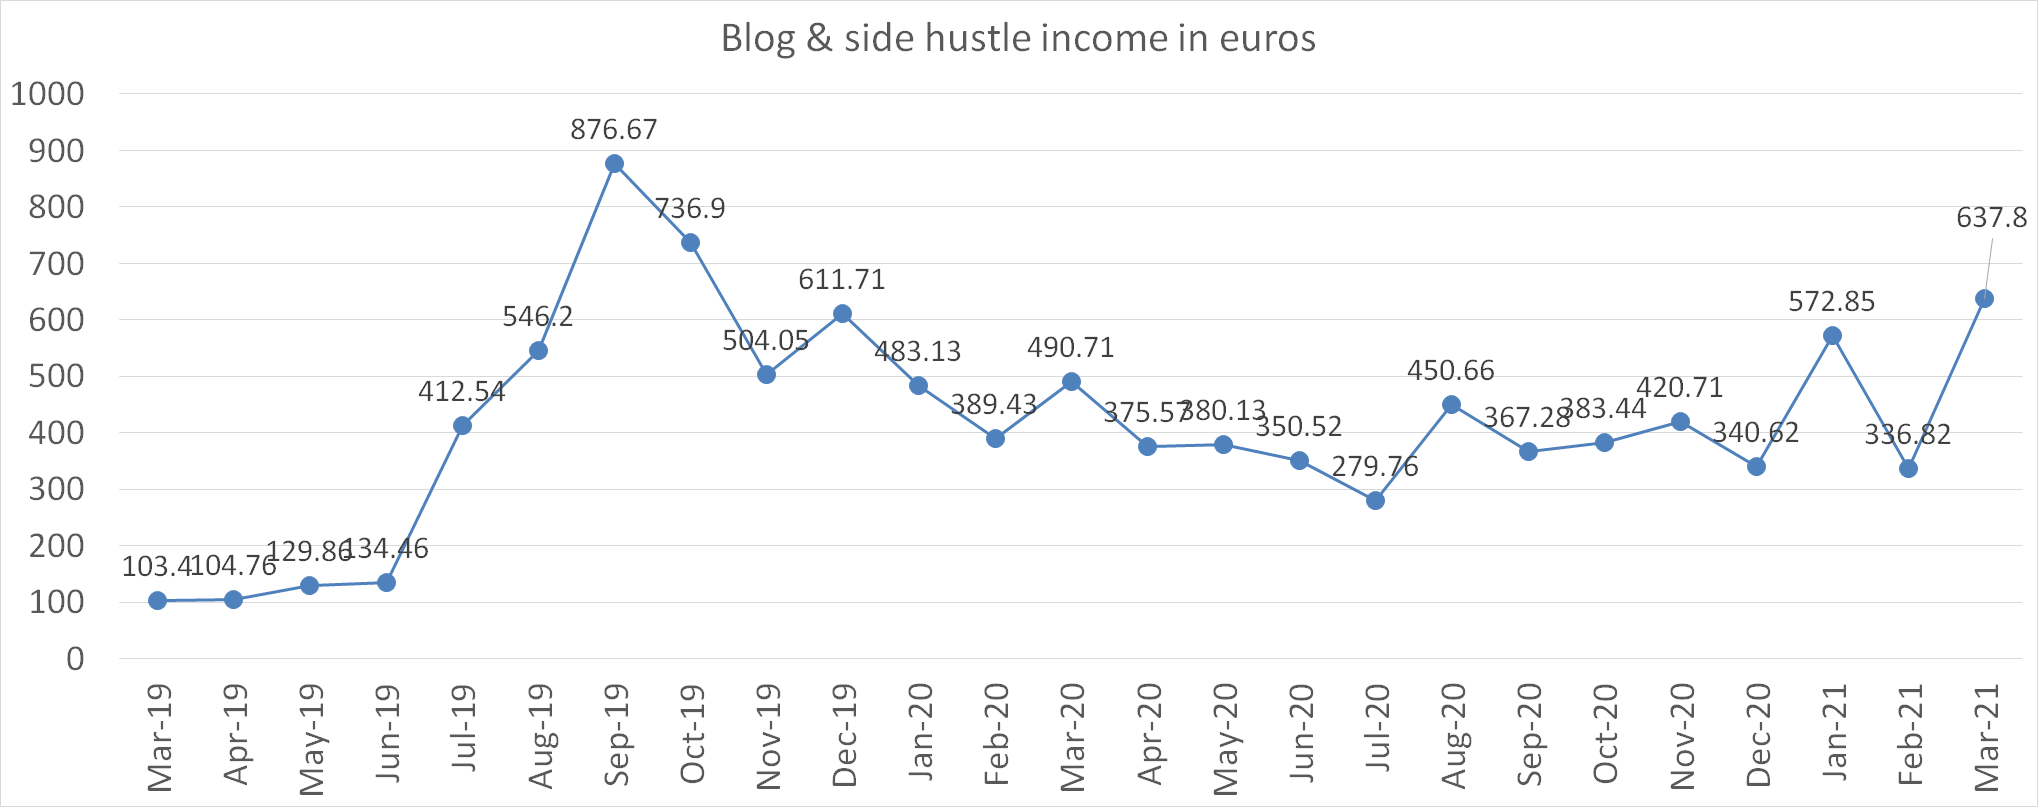 Blog & side hustle income in euros march 2021